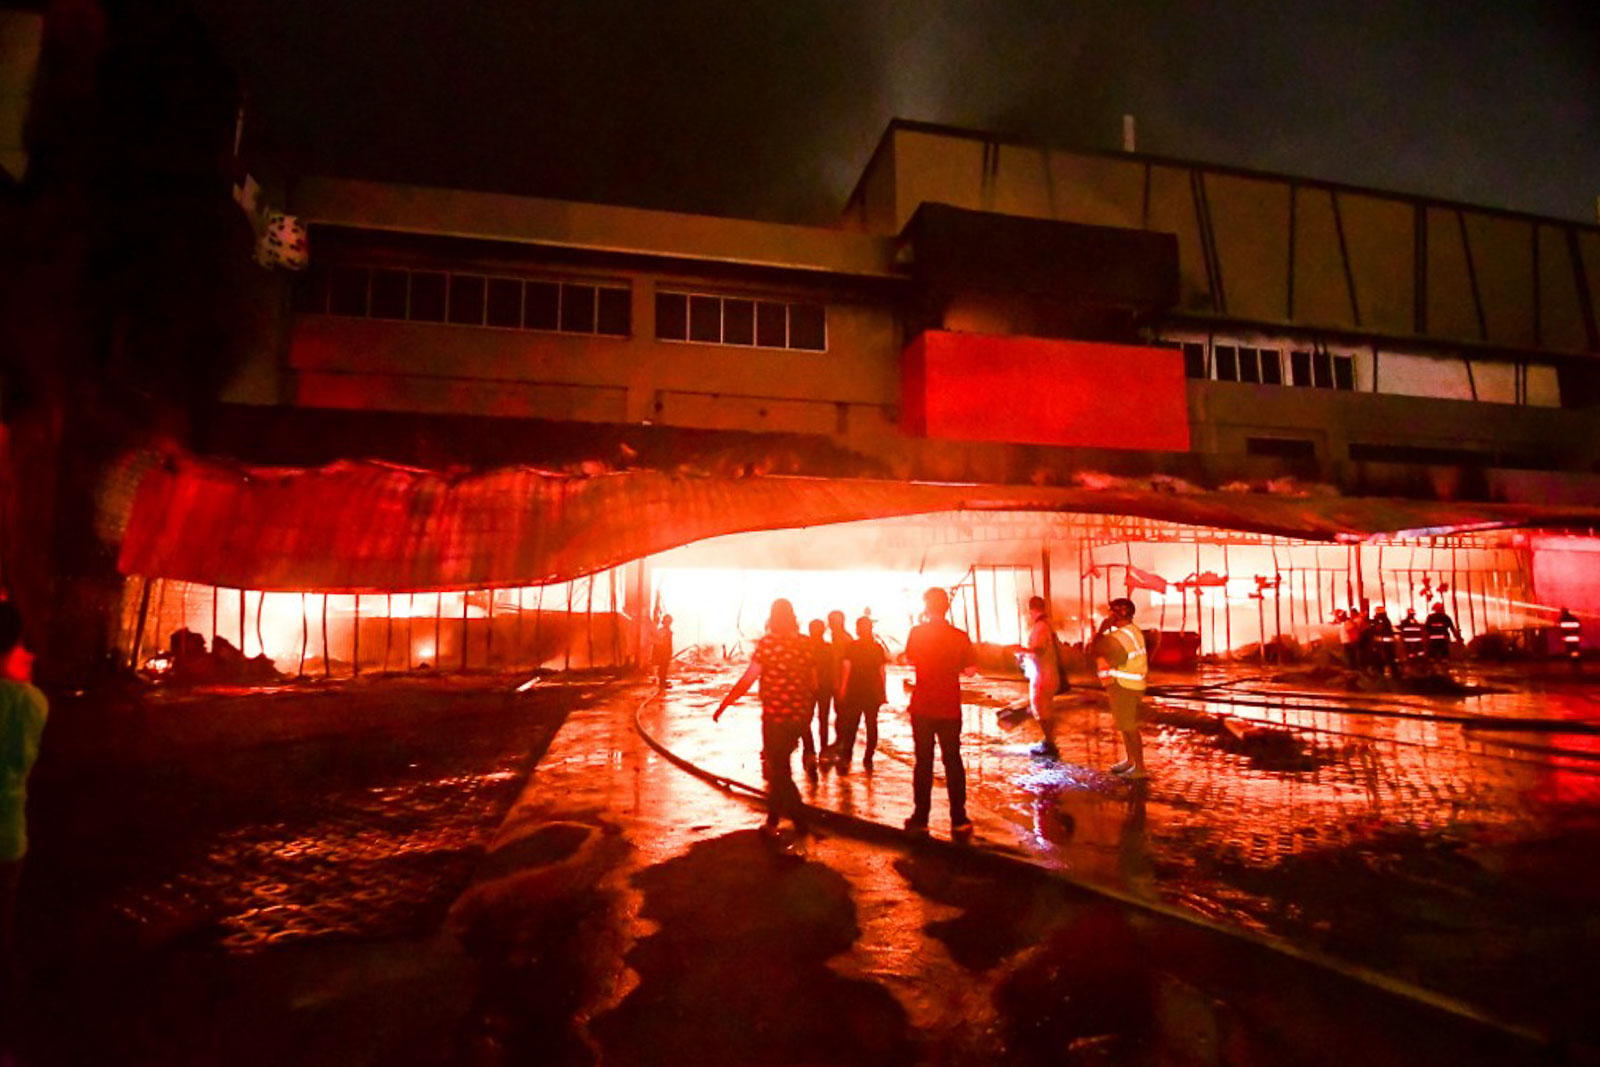 BLAZE. Firemen try to put out a fire inside a mall on October 16, 2019, after a magnitude 6.3 earthquake hit Mindanao. Photo by Edwin Espejo/AFP